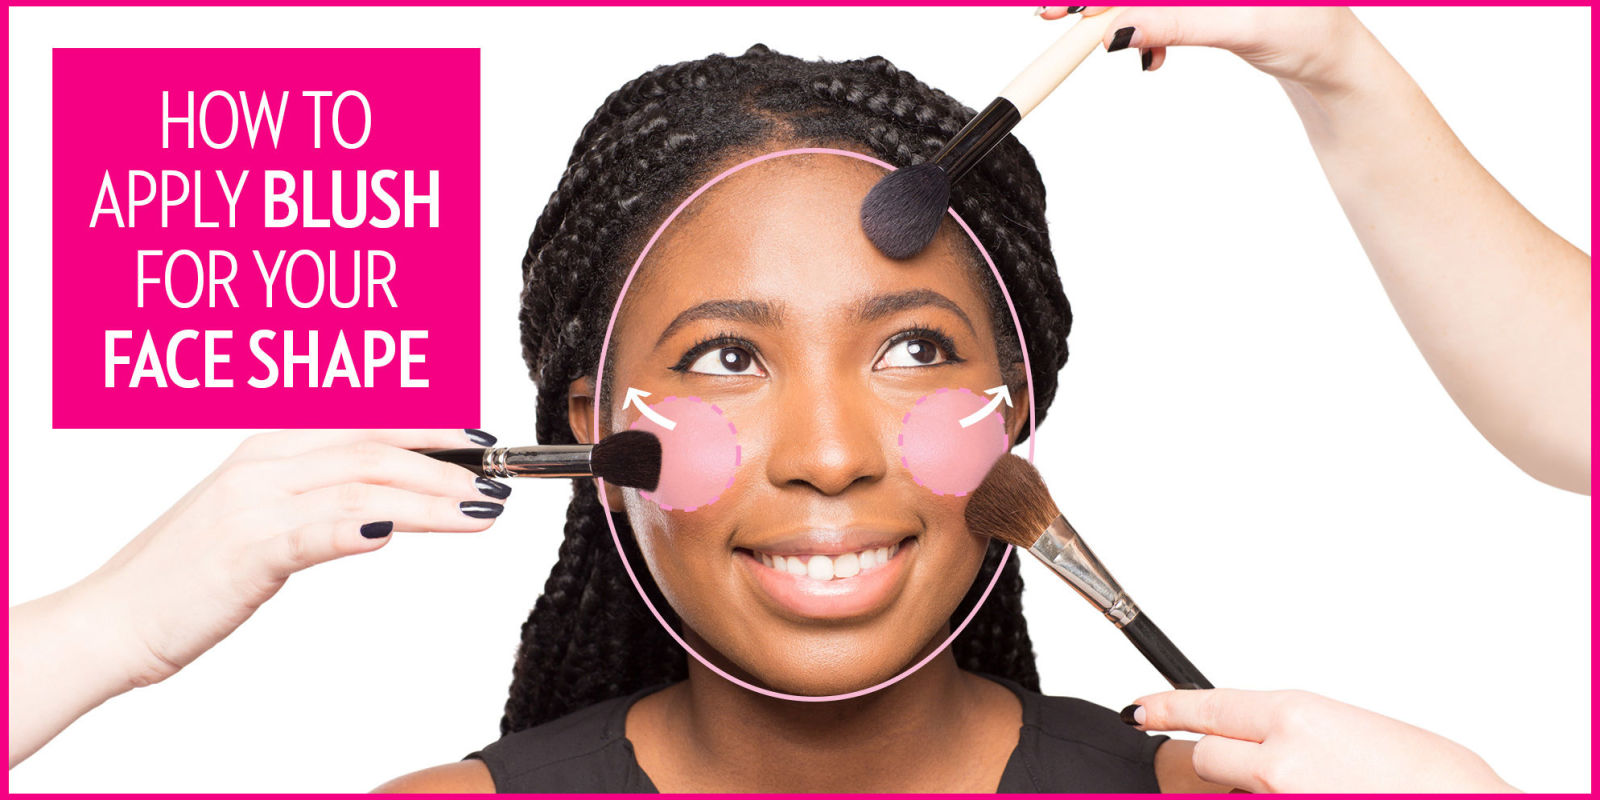 JGI/Jamie Grill When it comes to makeup over 50, some of the rules you lived by in your 20s and 30s no longer apply. Quite often, when women reach a certain age, they find that less is more and that they have to adapt their makeup routine to fit their skin.